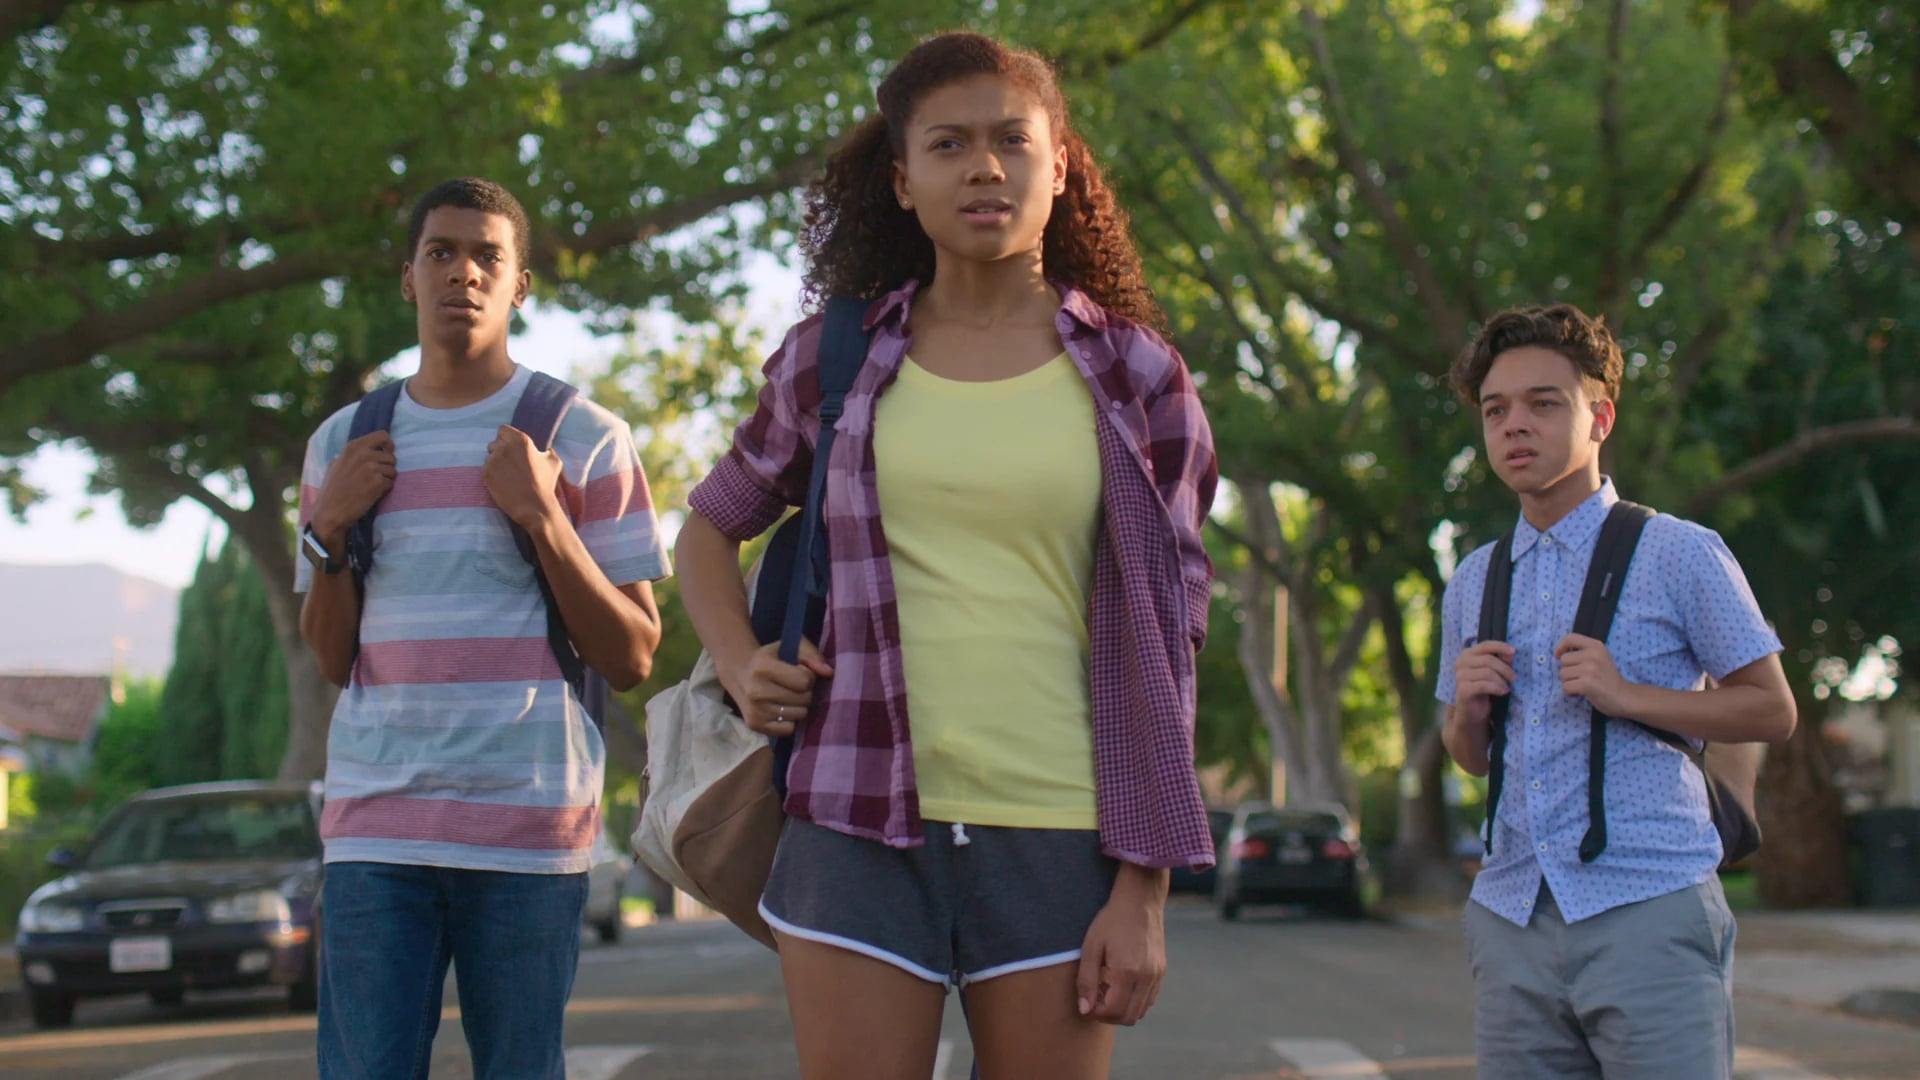 On My Block' Review - A Coming of Age Show I Wish I Had Growing Up